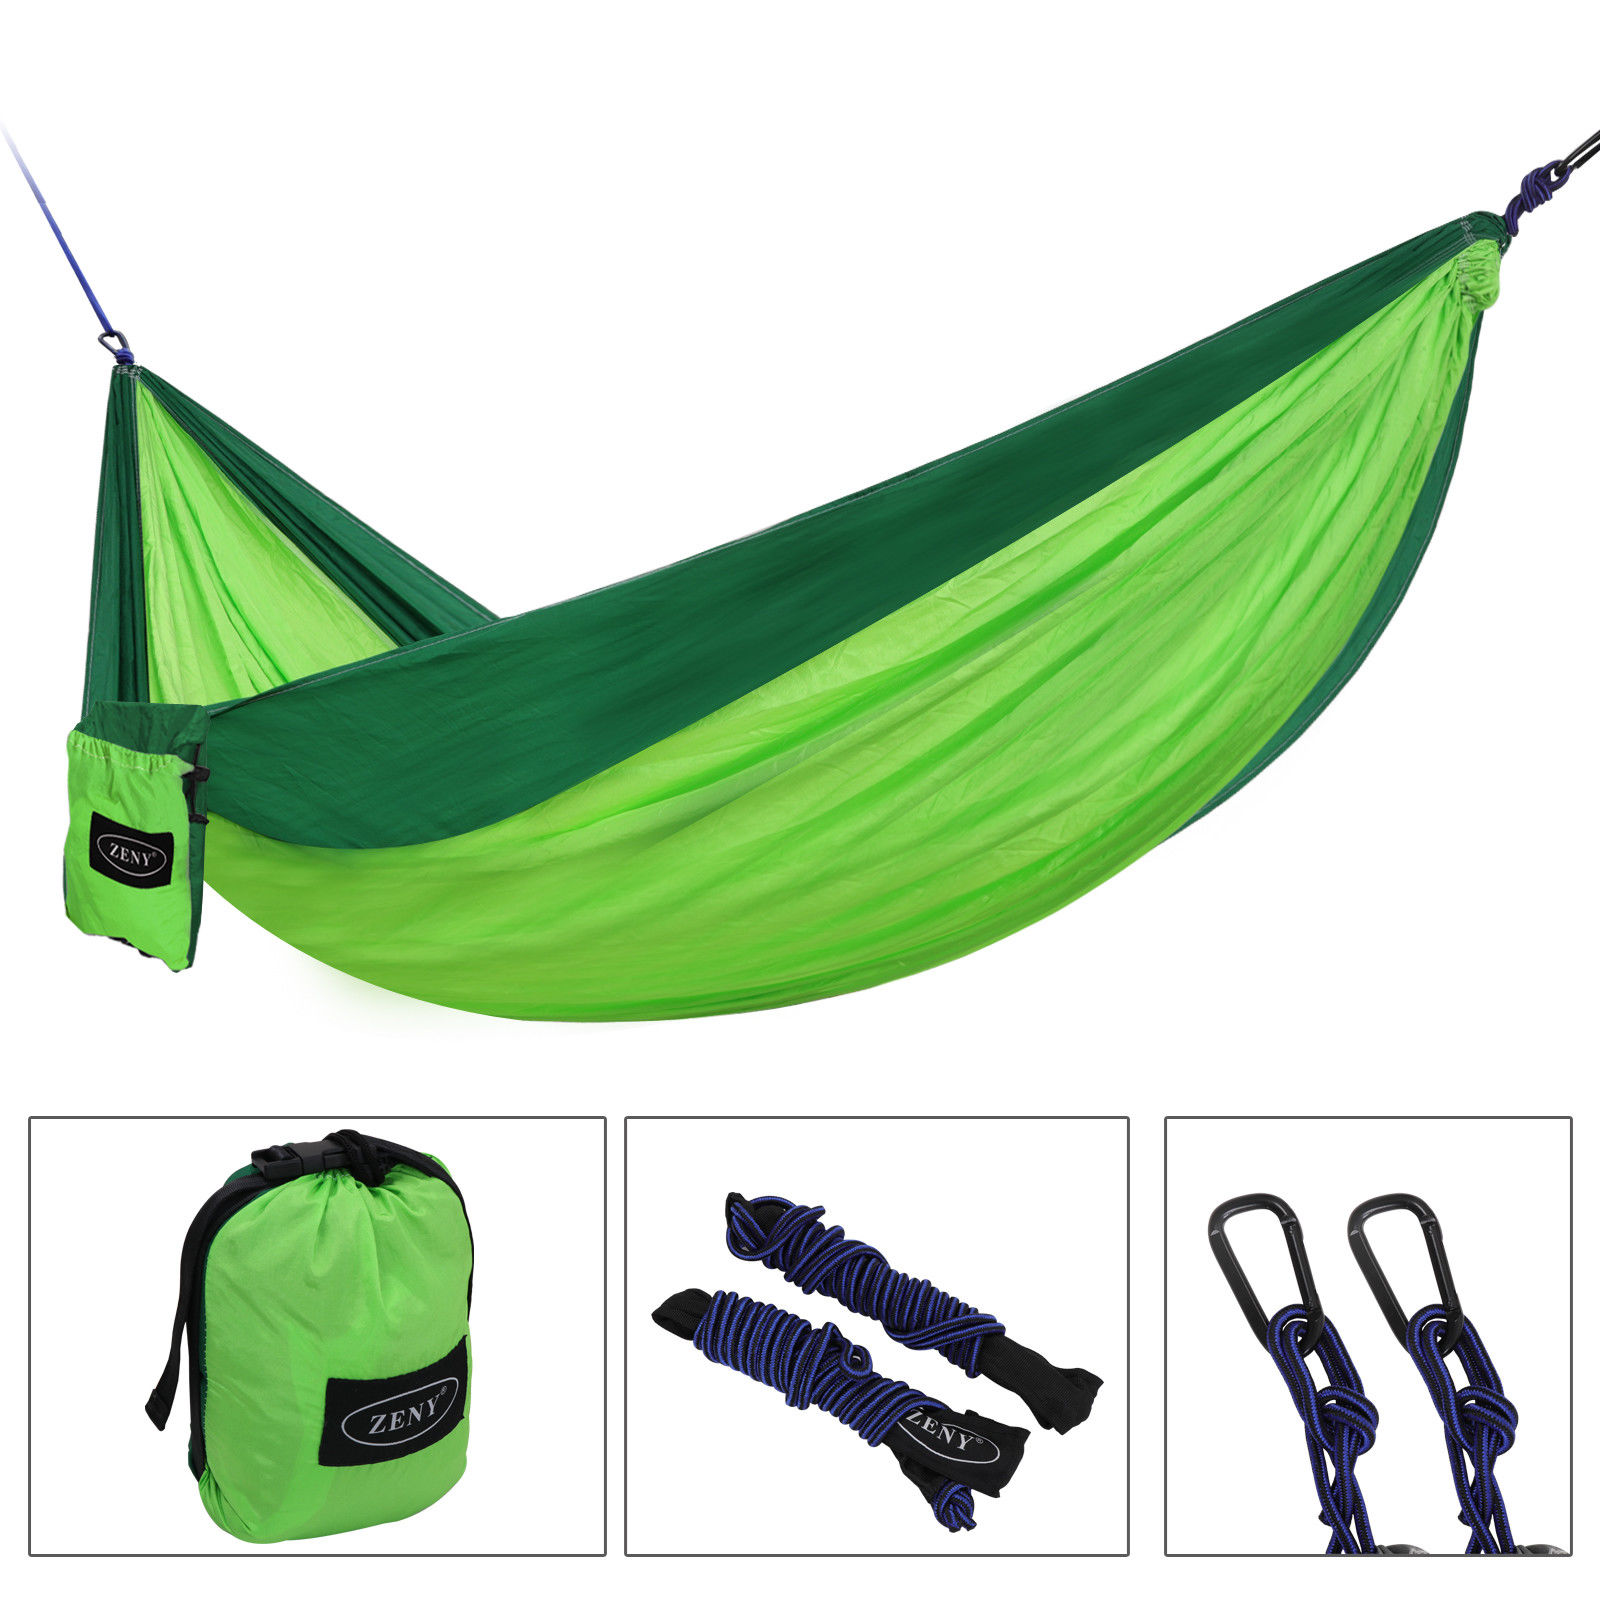 Zeny Double Hanging Hammock Two person Nylon Camping Hammock Portable Travel Sleep Swing With Storage Bag